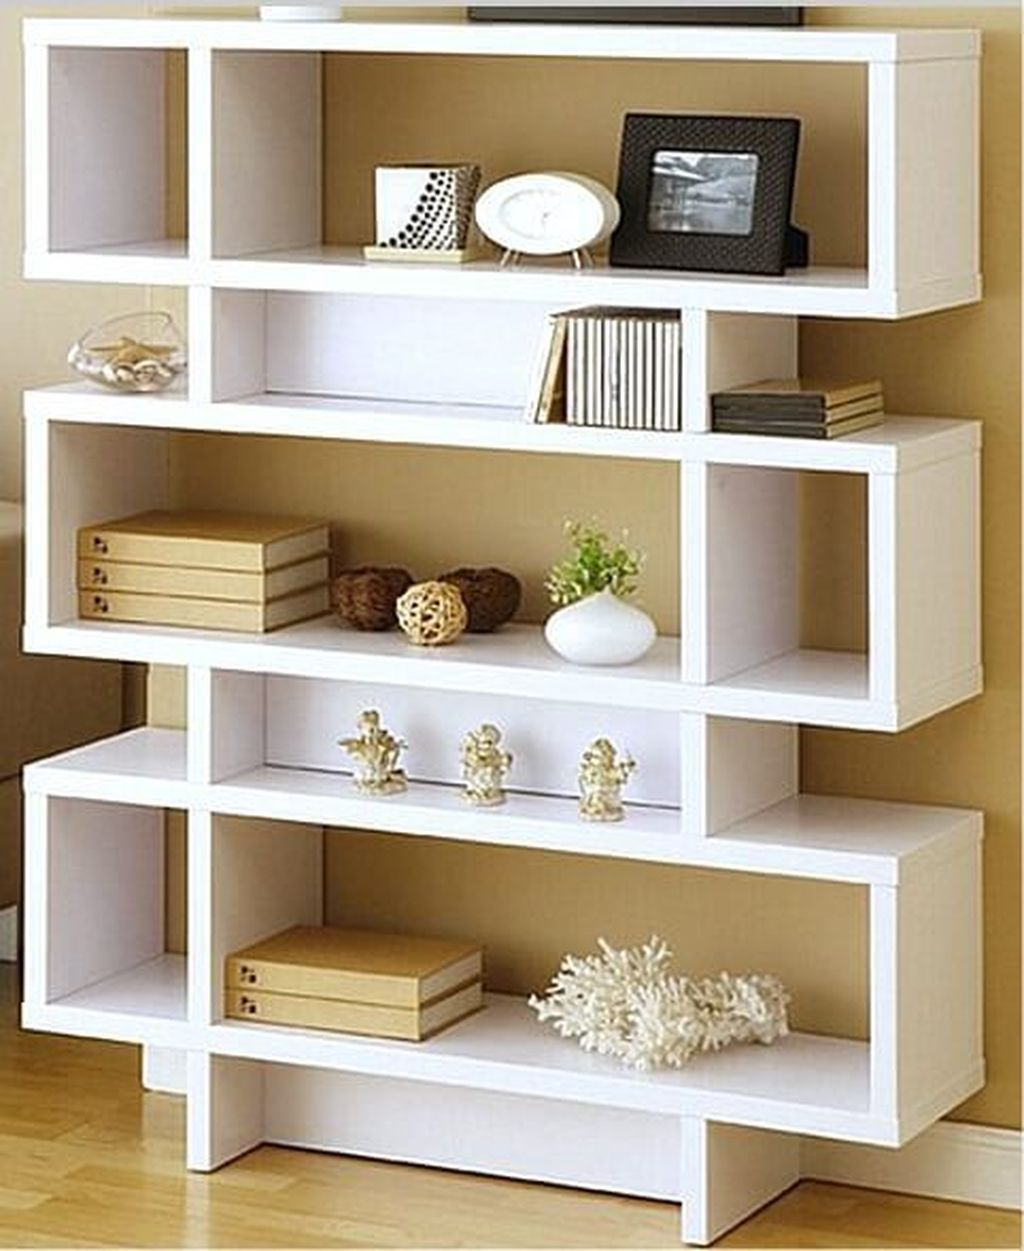 44 awesome open shelving bookshelves ideas to decorating your room rh ar pinterest com